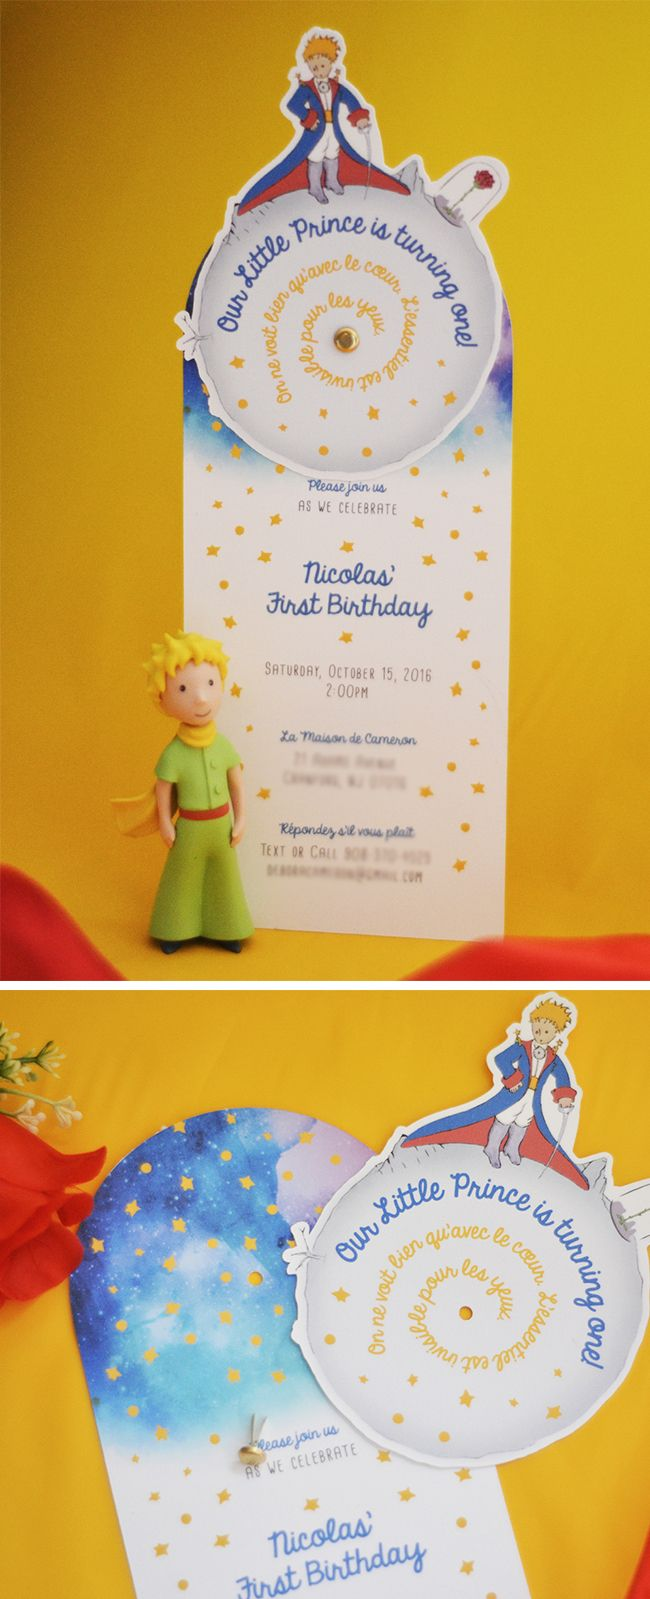 handmadest birthday party invitations%0A Le Petit Prince Party Invitation and Decorations by The Blush Market